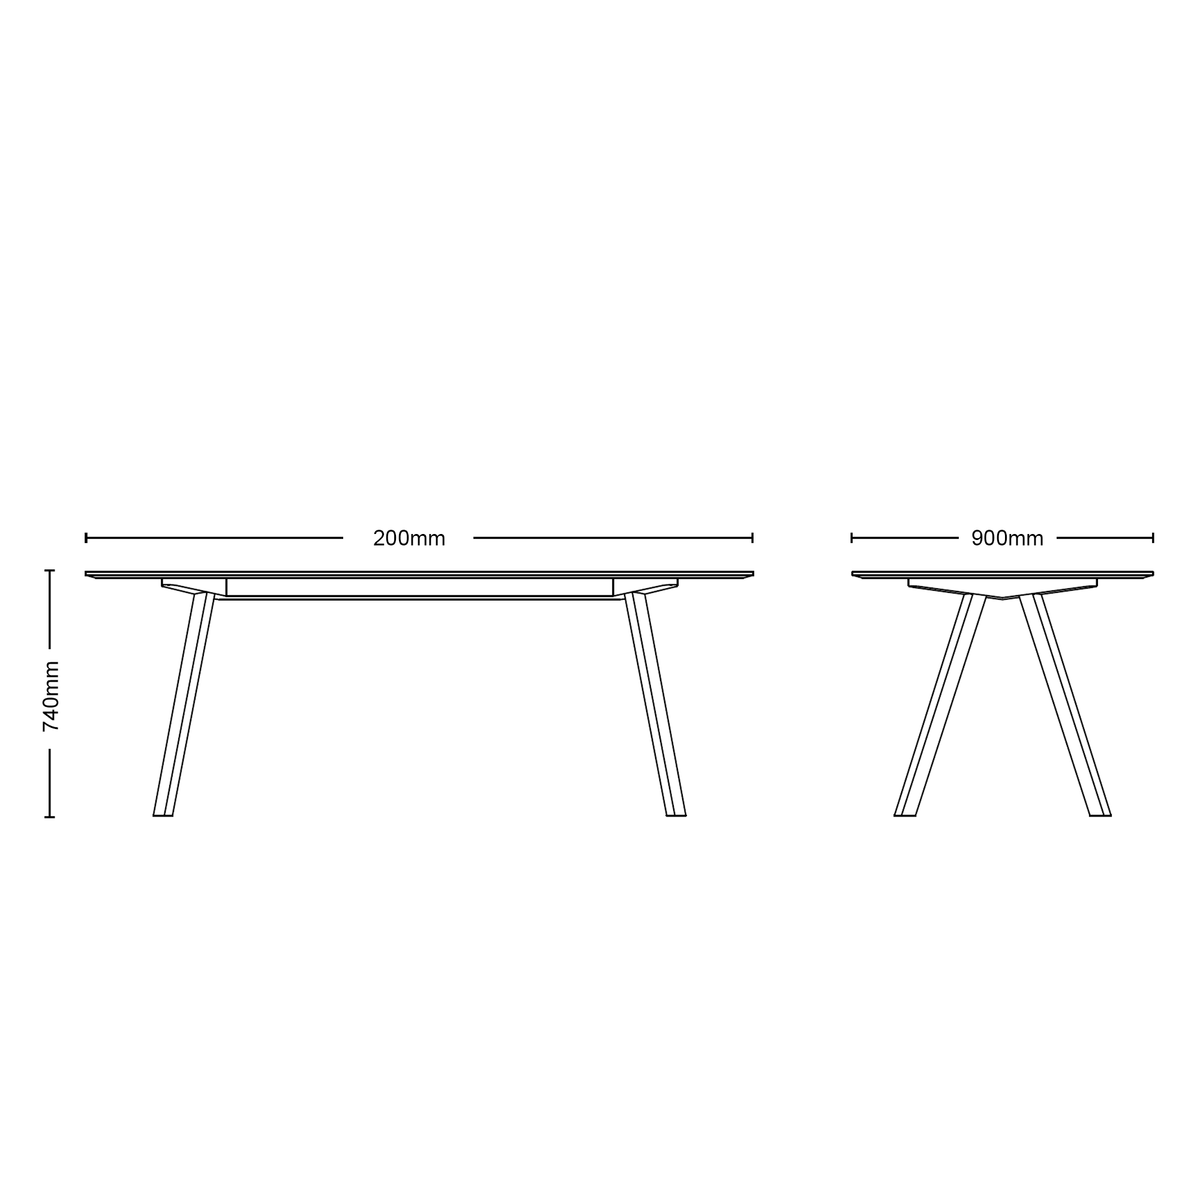 Dimensions for HAY Office CPH 30 Table, 2000mm Black